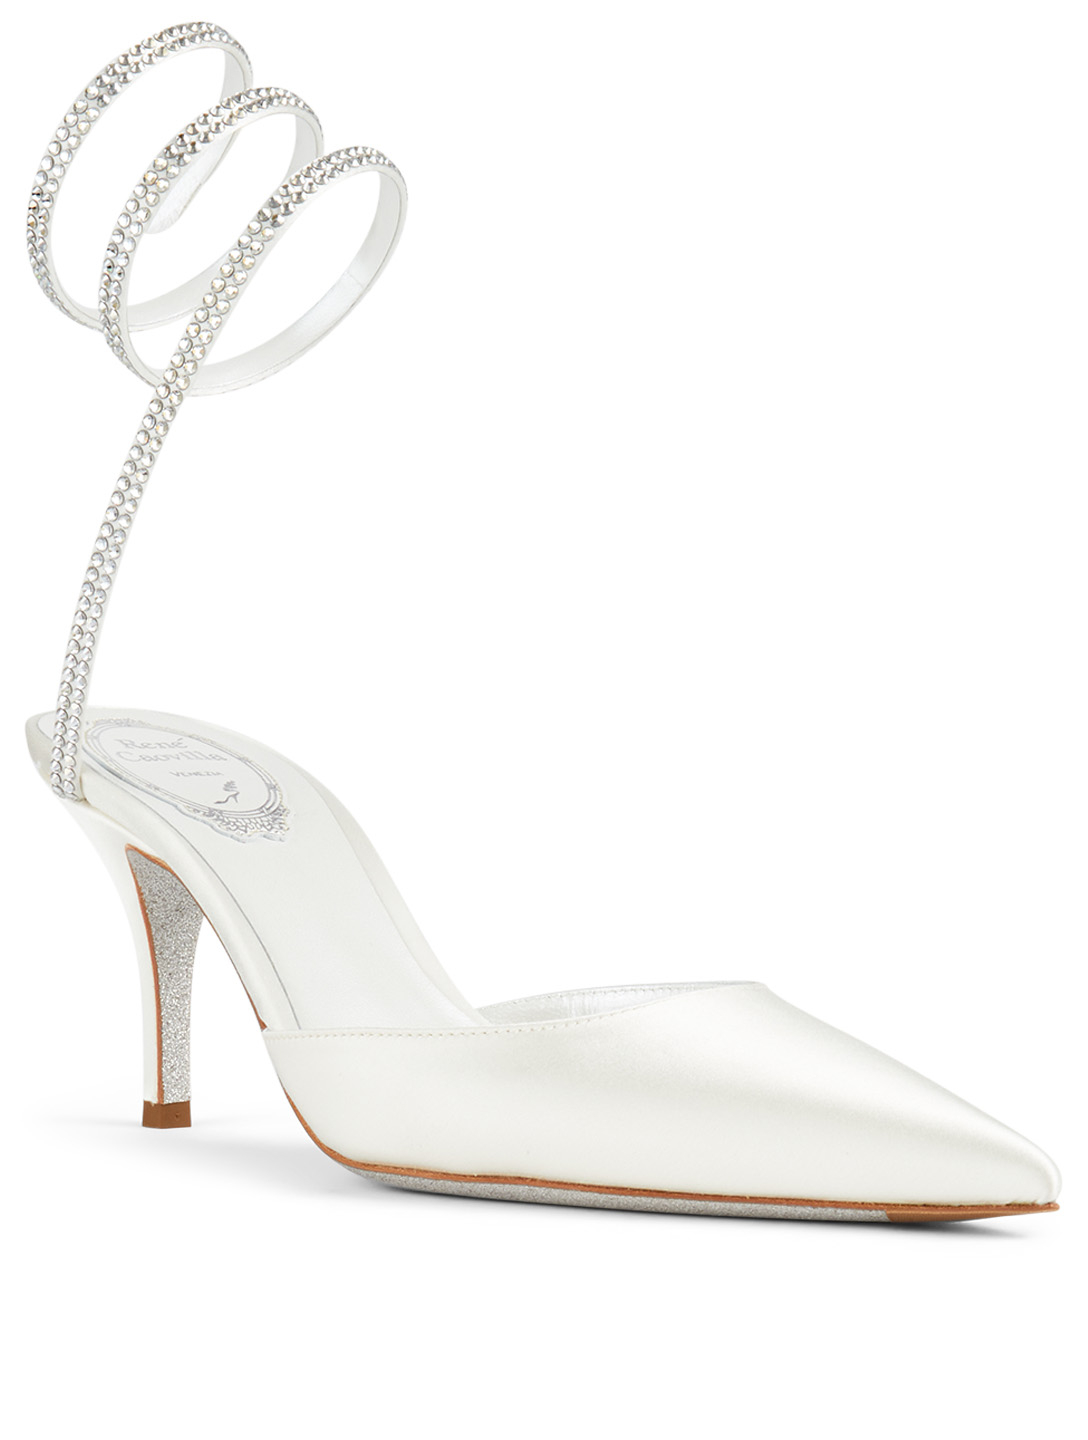 RENE CAOVILLA Cleo 75 Satin Crystal Coil Pumps Women's White